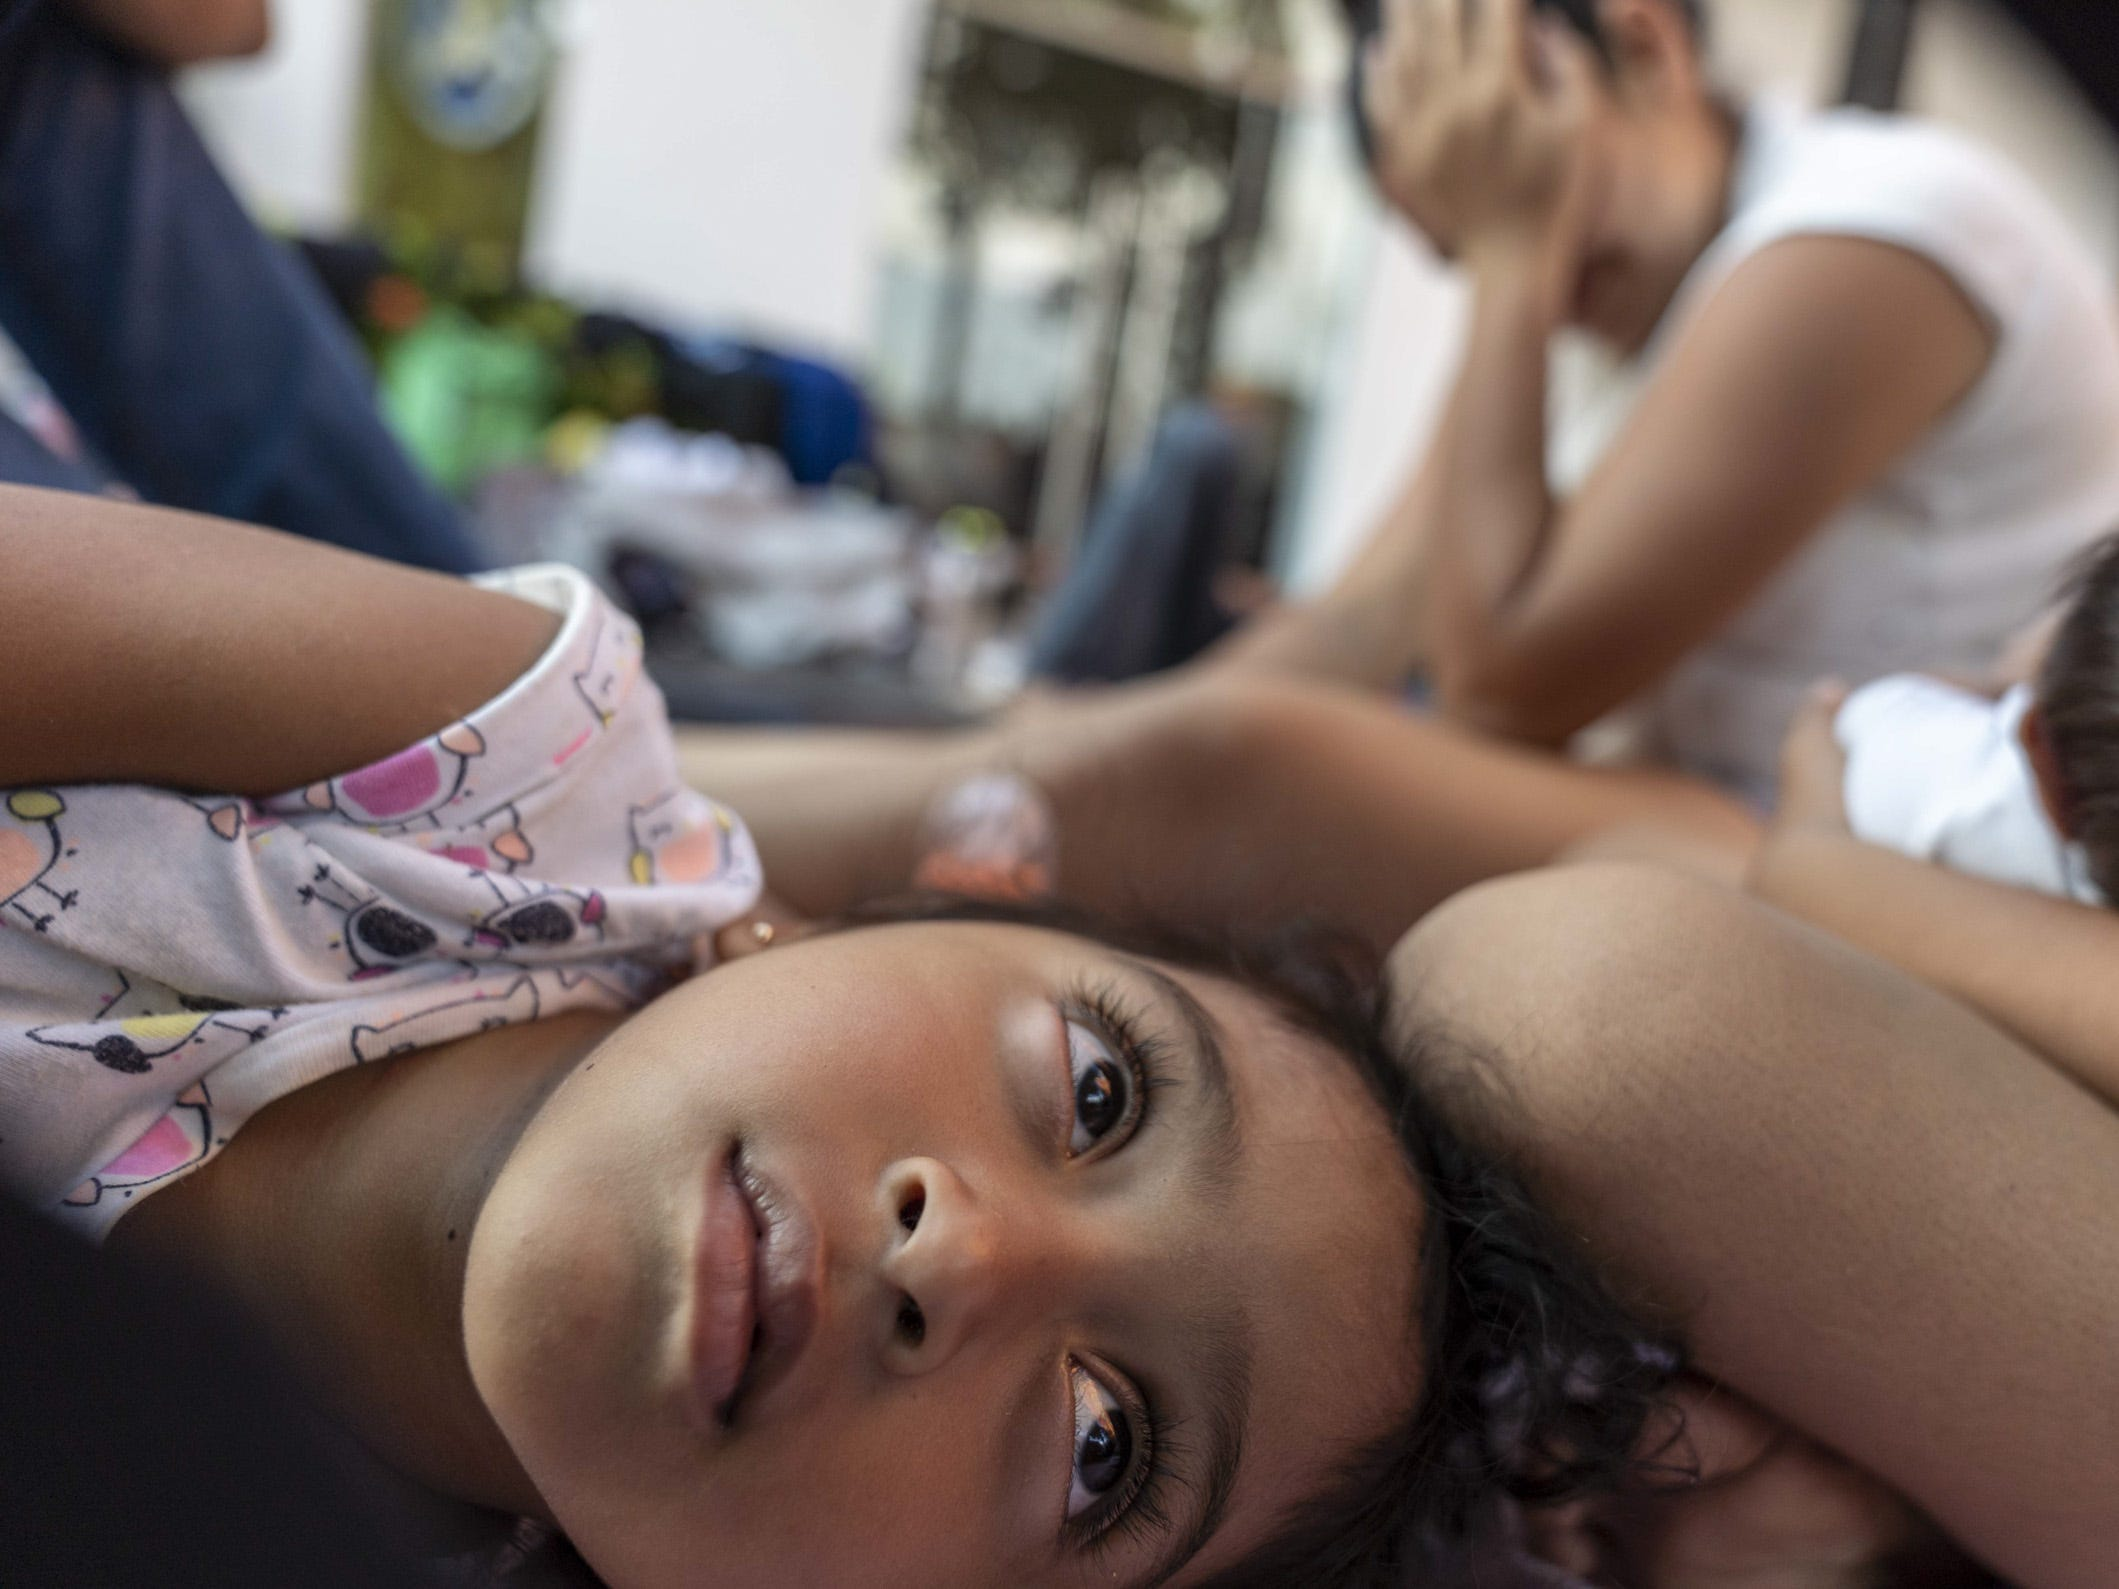 As of Oct. 27, Ernesto Martinez, 27, and his wife Yesenia, 23, have been traveling with their three daughters, including a baby who was just 17 days old when they joined the caravan.